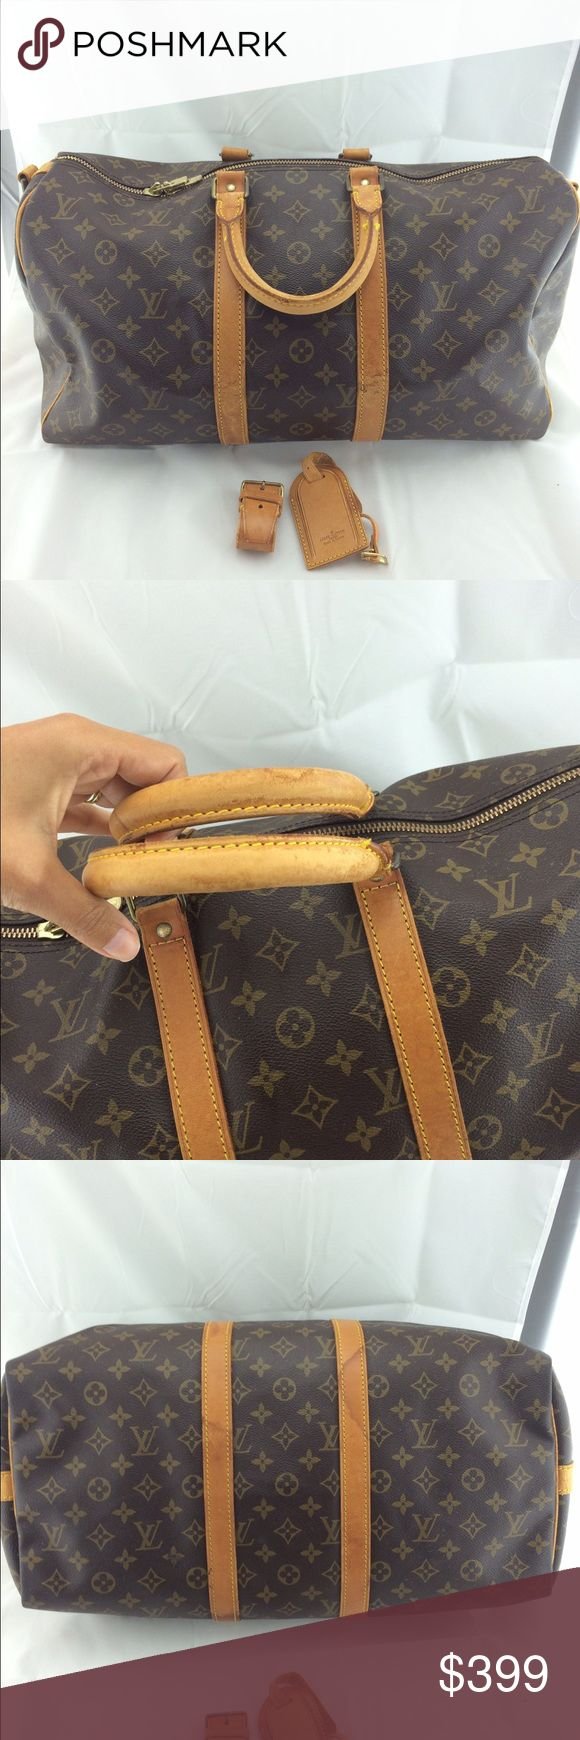 Authentic Louis Vuitton keepall 45 travel bag 100% authentic.good preowned condition.no trades.id tag and small strap included. Louis Vuitton Bags Travel Bags